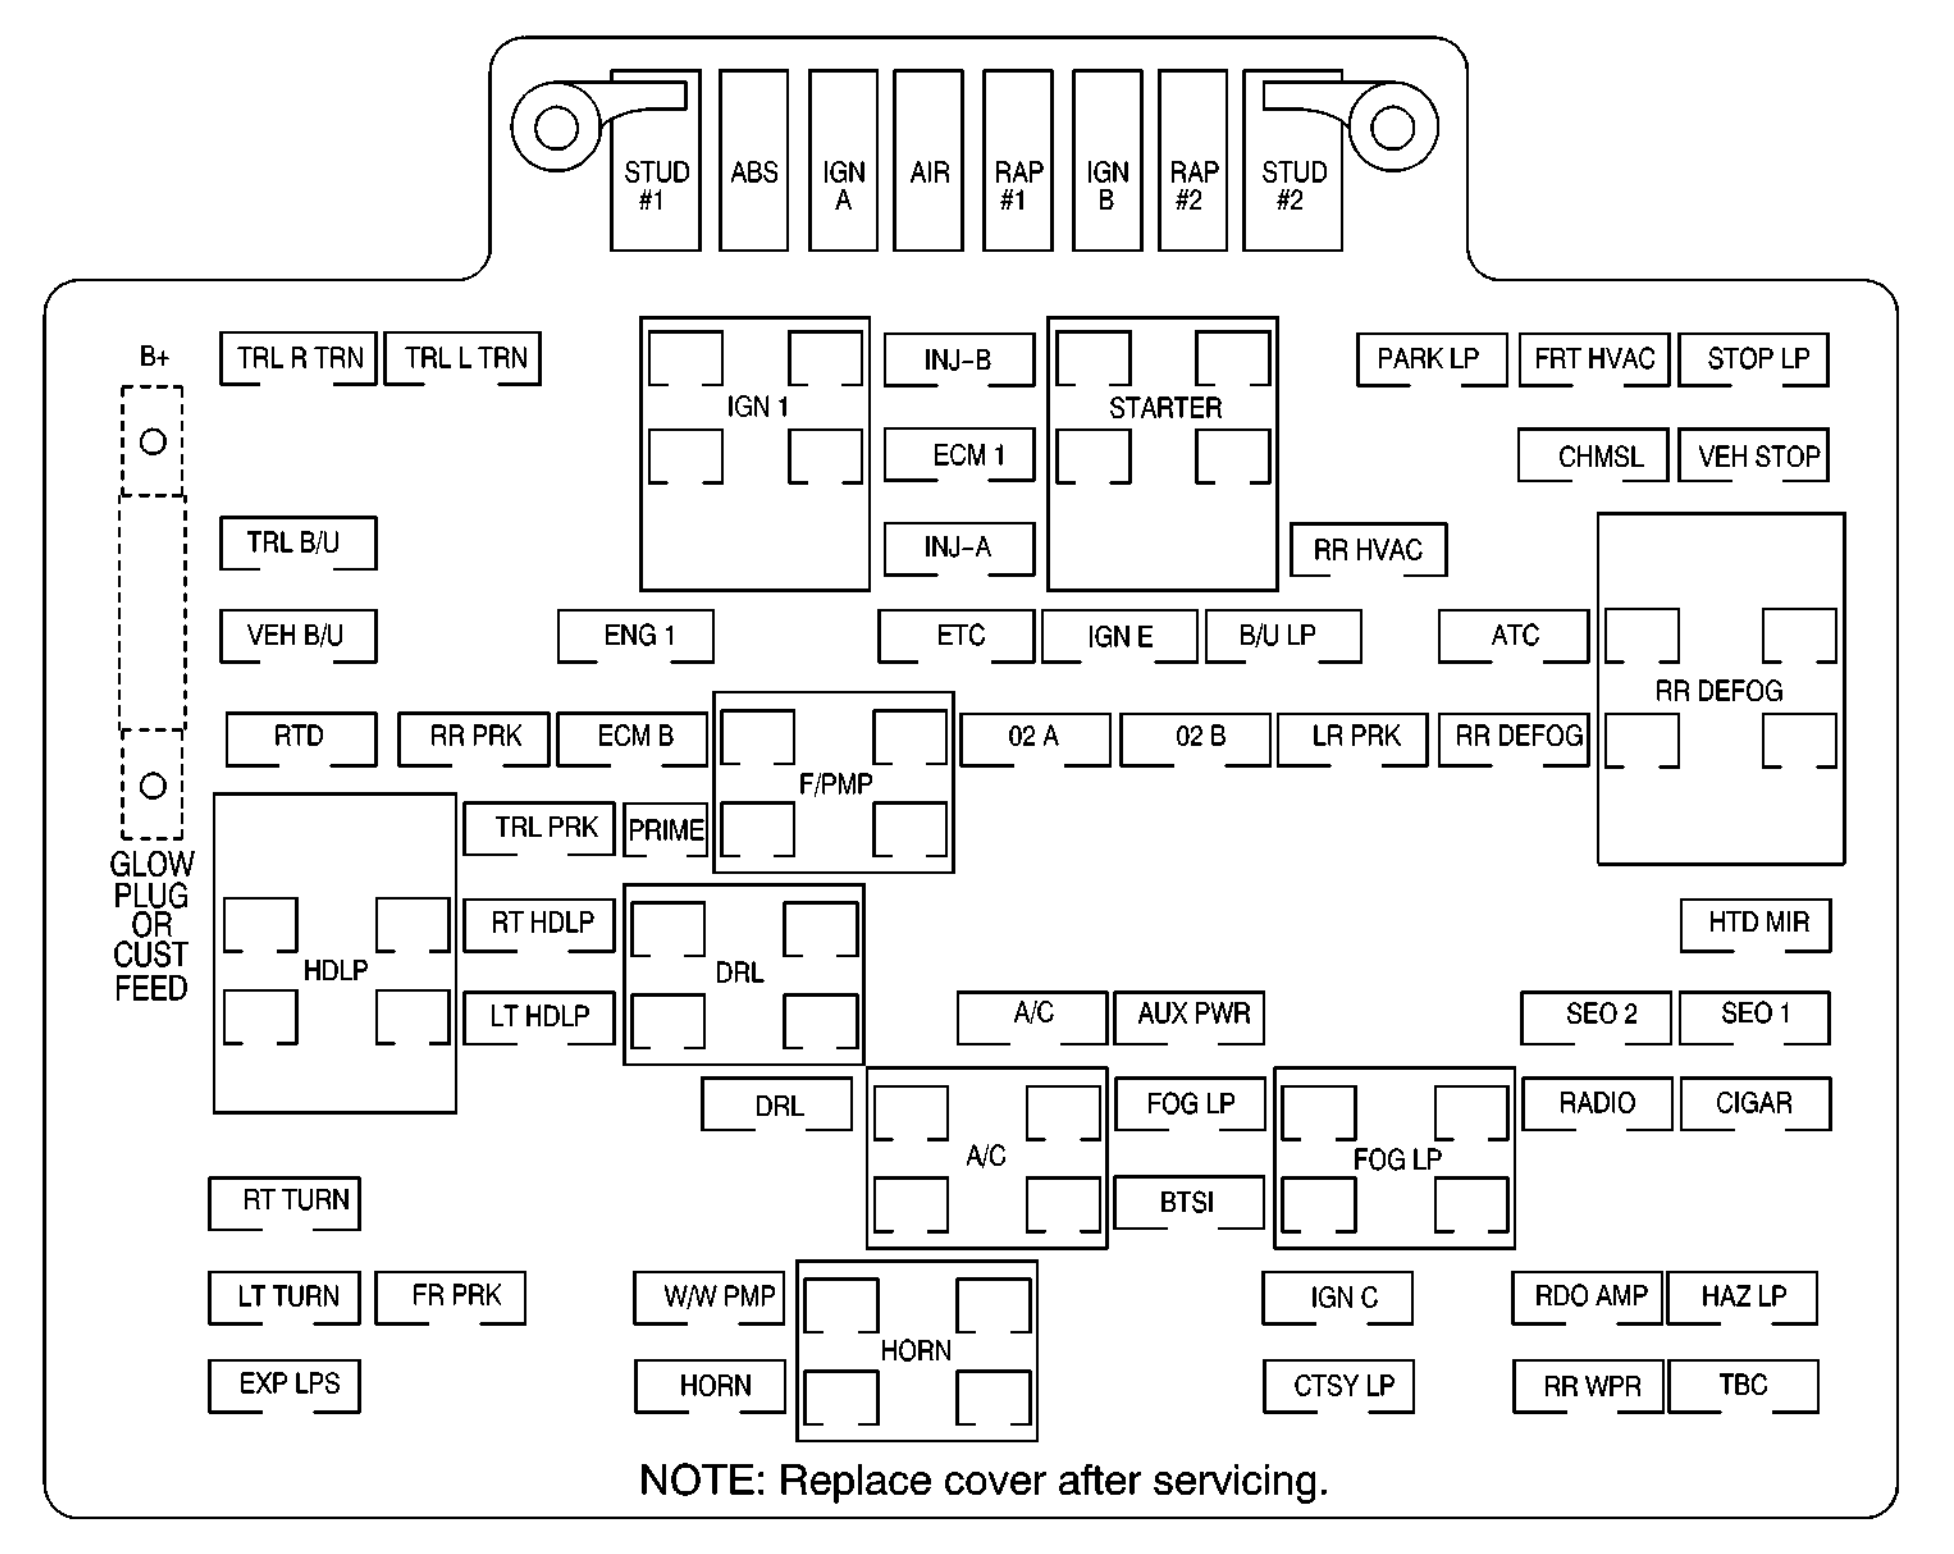 Chevrolet Suburban Fuse Box Diagram